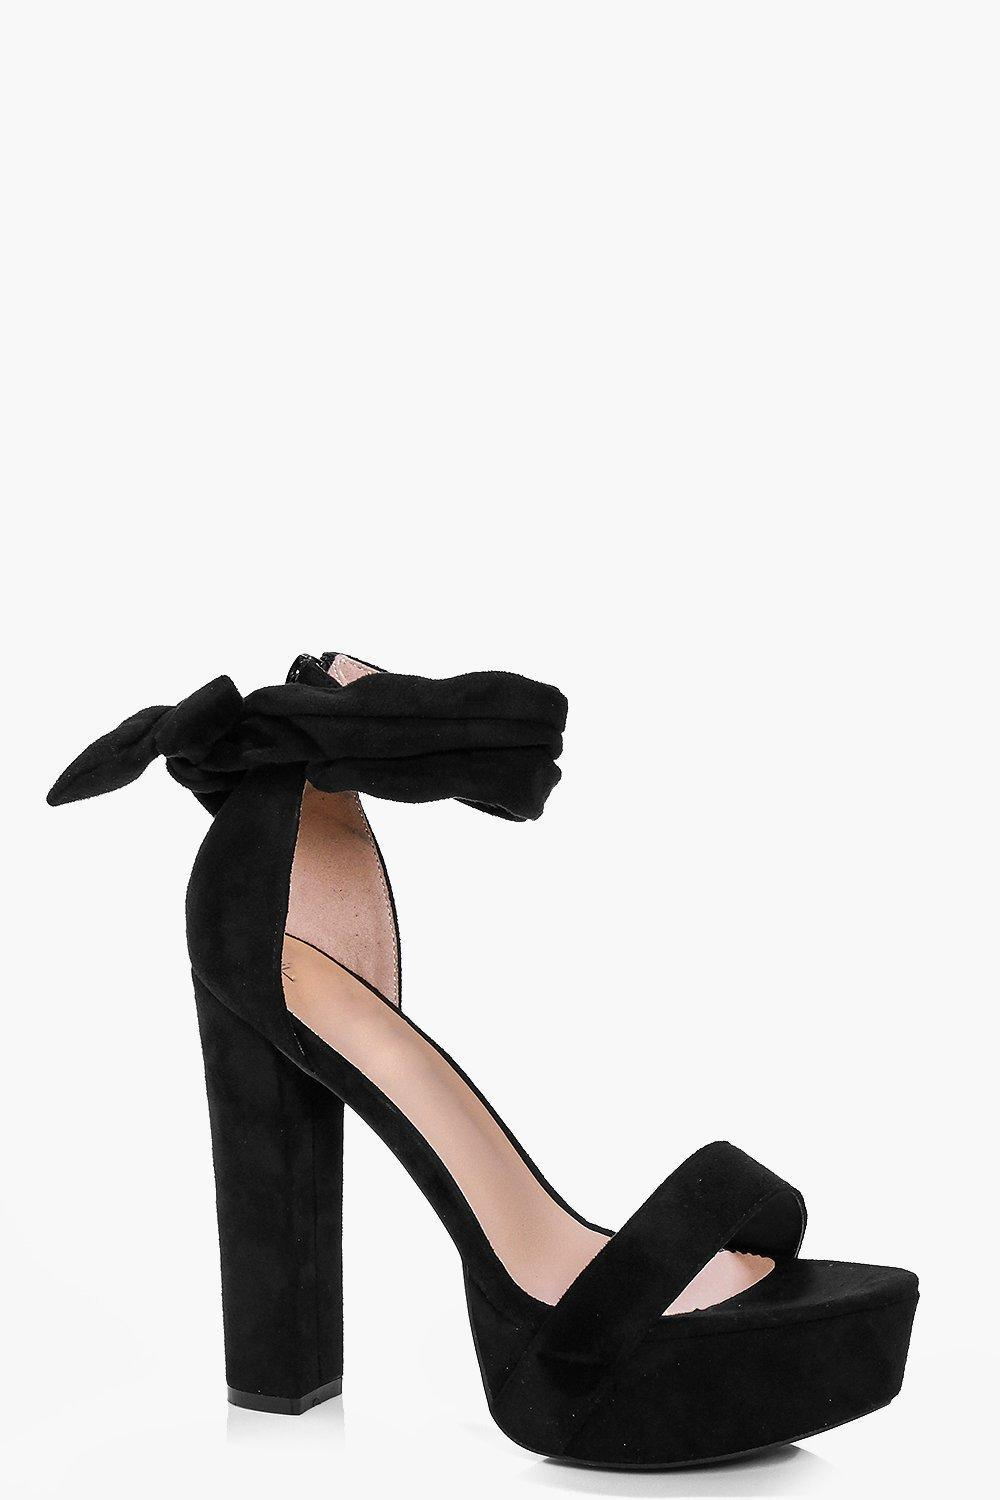 d94ca90157d0 Lyst - Boohoo Two Part Platform Heels in Black